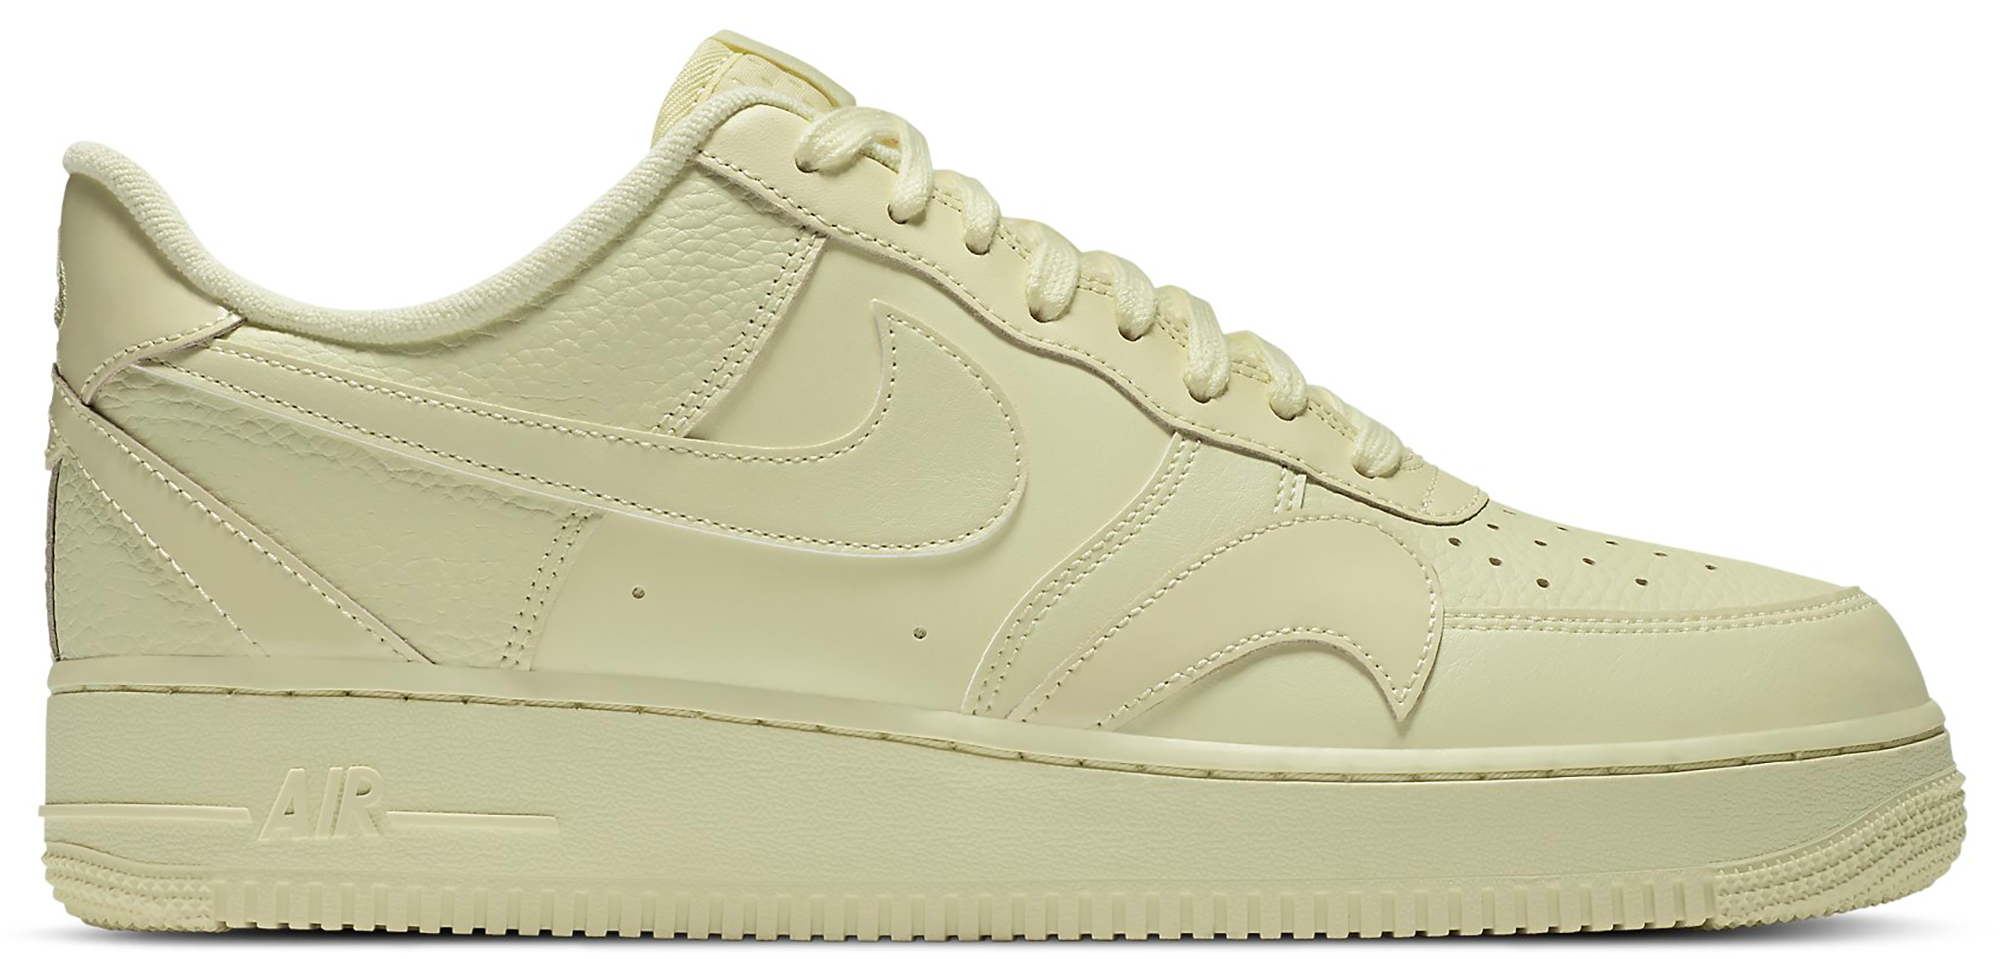 Nike Air Force 1 Low Misplaced Swooshes